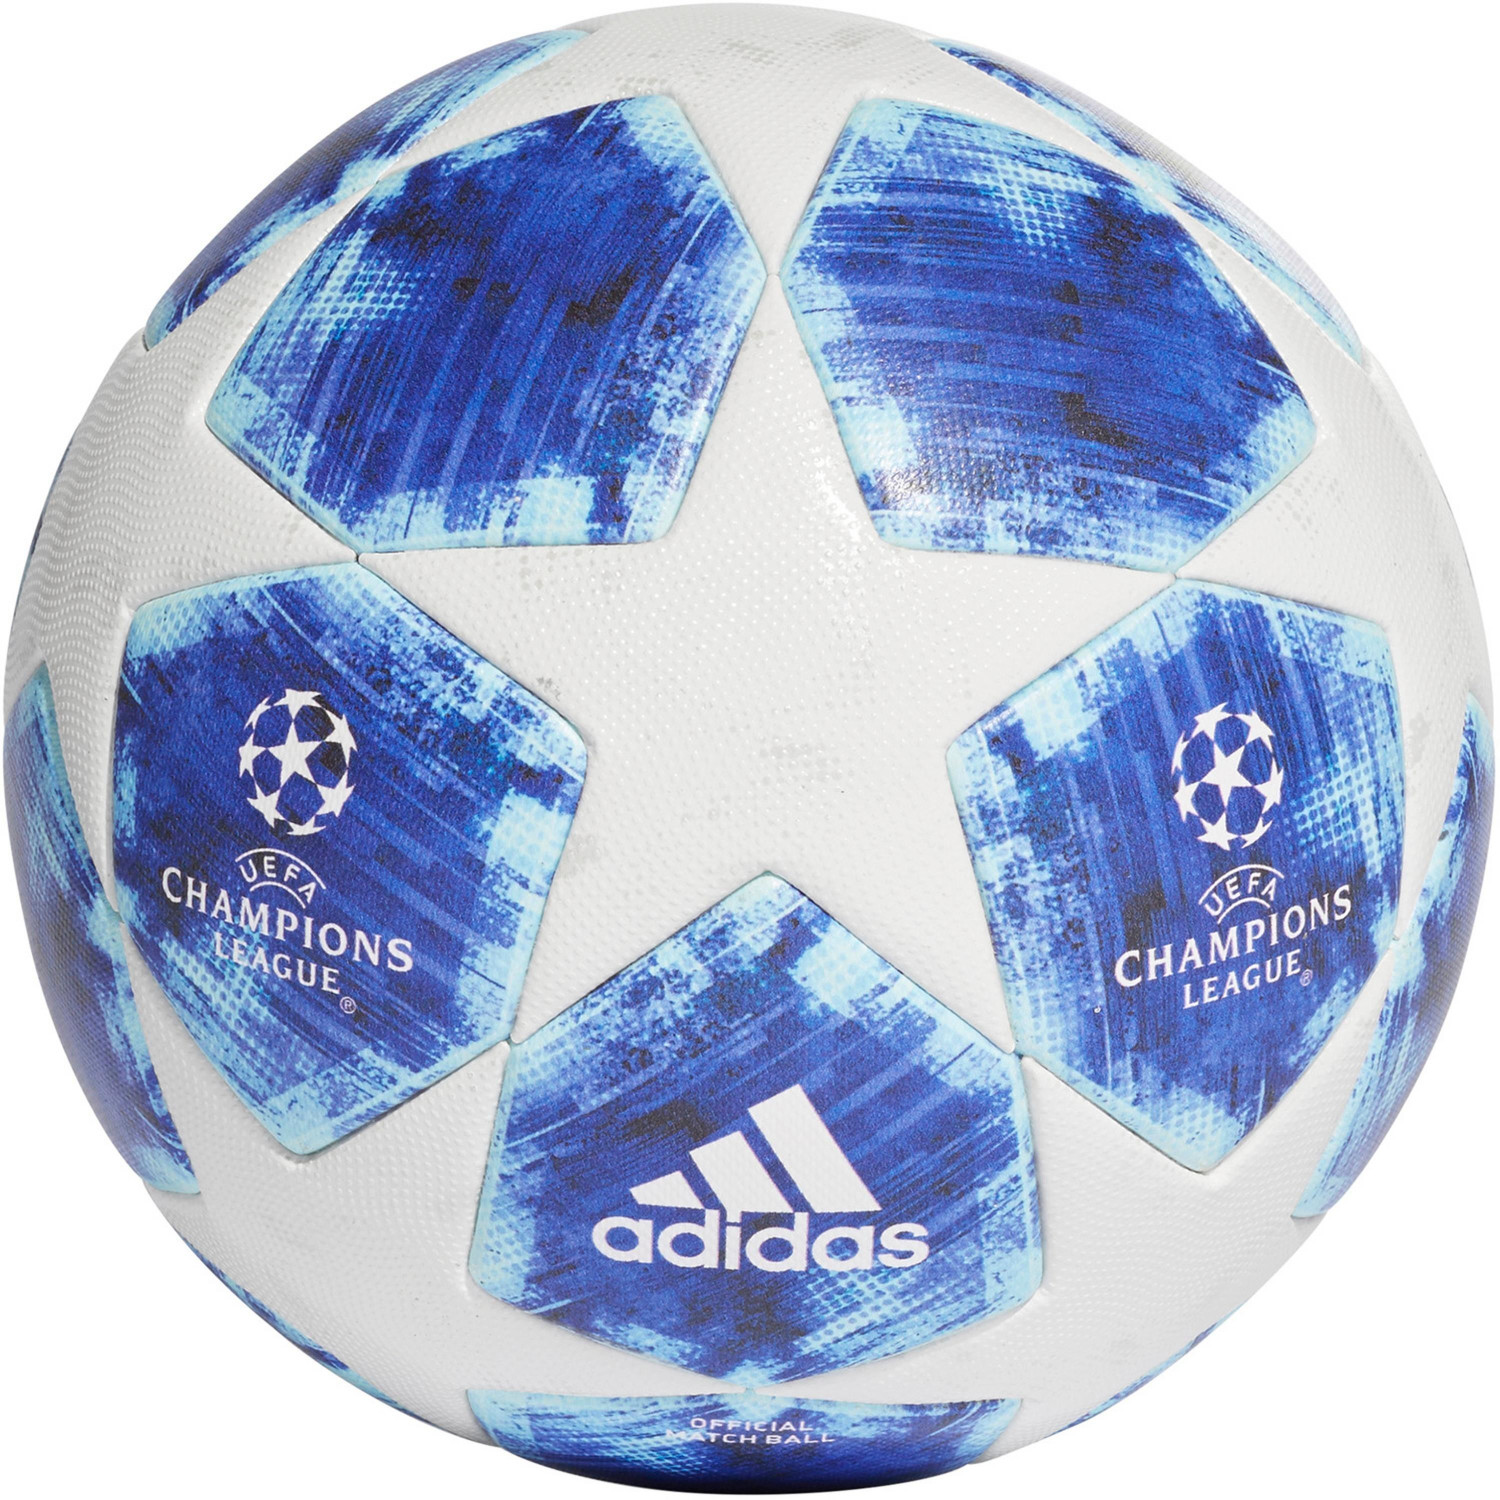 Adidas UEFA Champions League UCL Final football white / football blue / bright cyan colligate royal